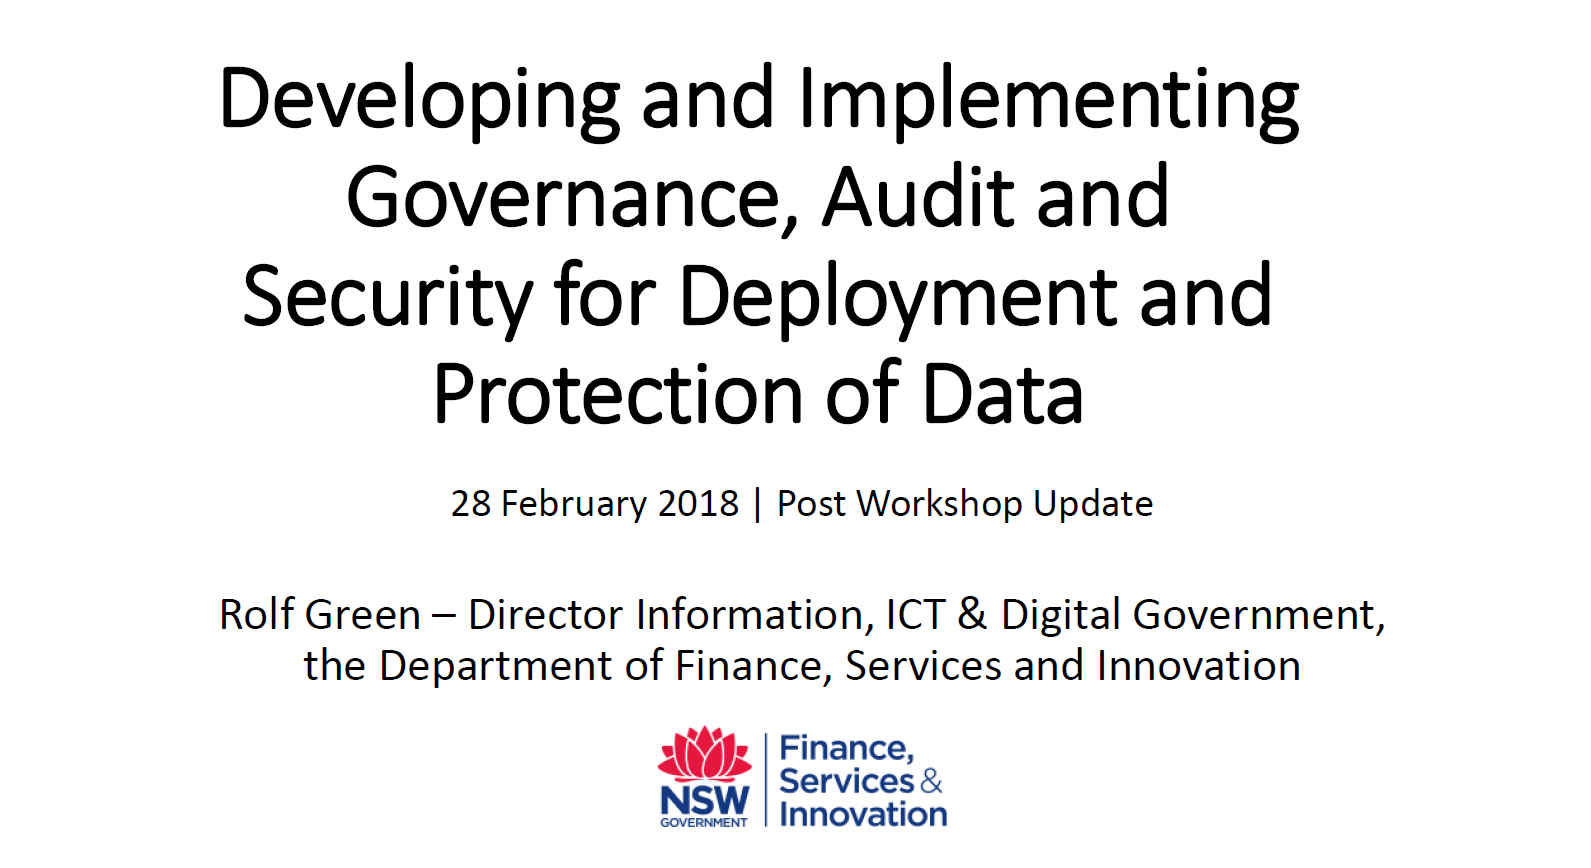 Developing And Implementing Governance, Audit And Security For Deployment And Protection Of Data